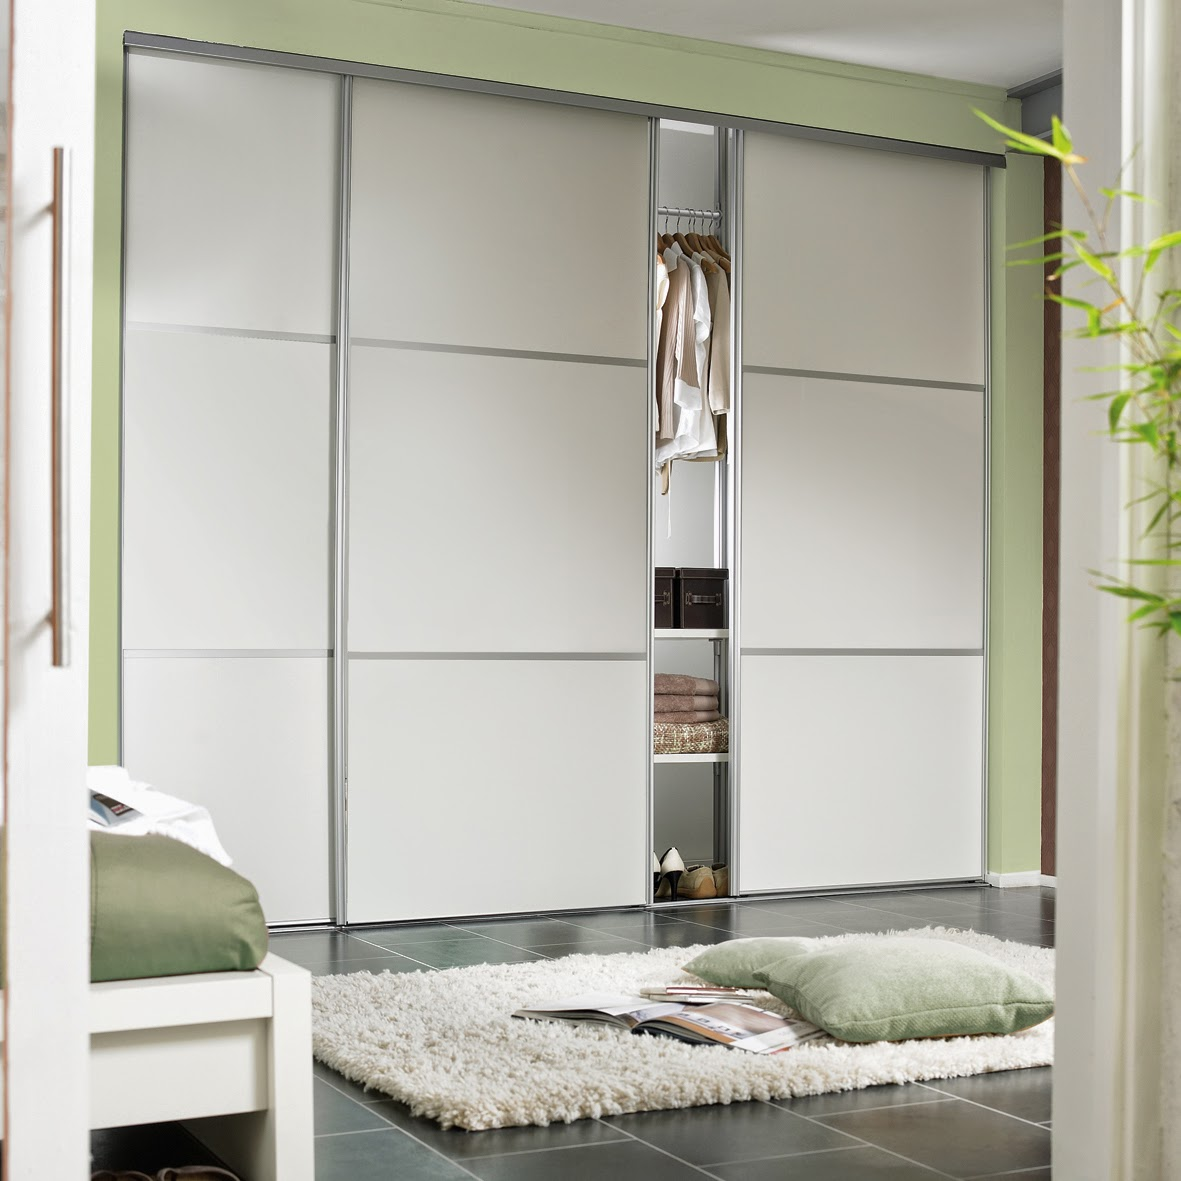 Bedrooms Plus Sliding Wardrobe Doors and Fittings: How to